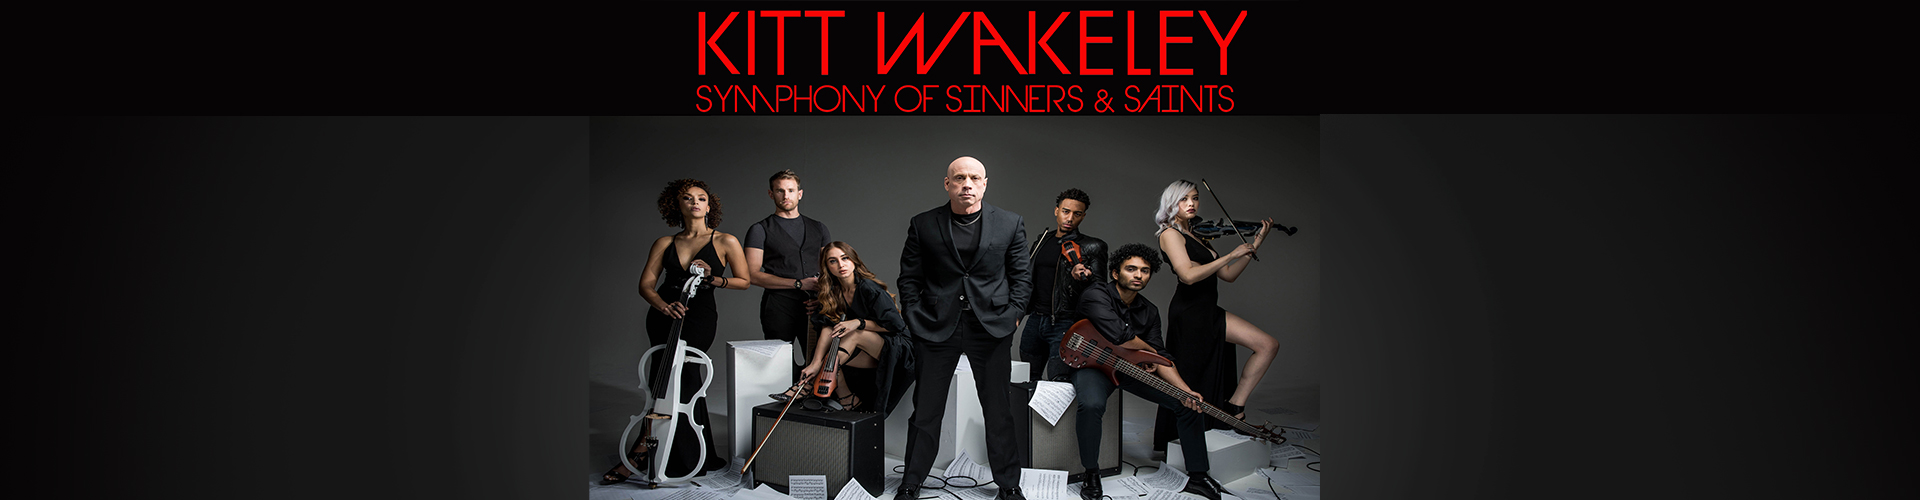 Kitt Wakeley and the Symphony of Sinners & Saints